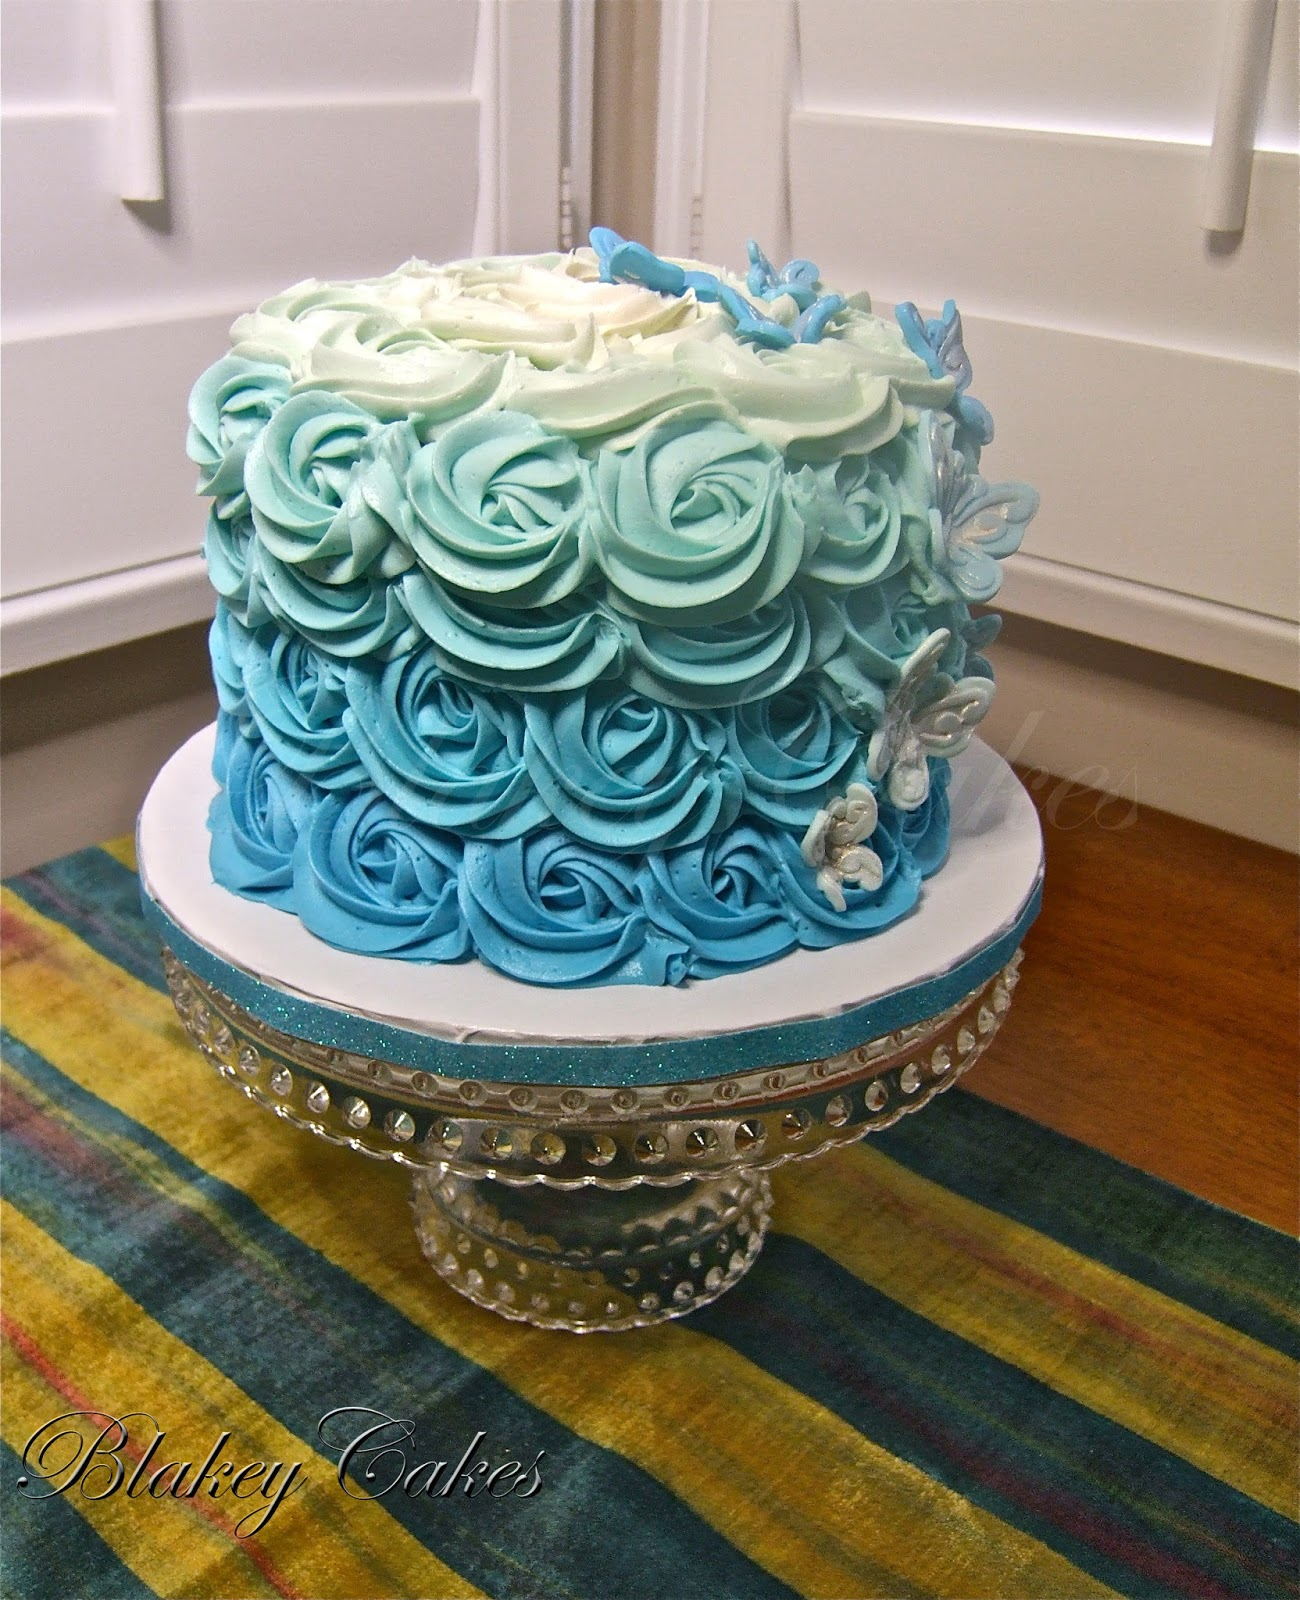 Blue Ombre Cake Images : BlakeyCakes Cakes & Cupcakes: Blue Ombre Cake